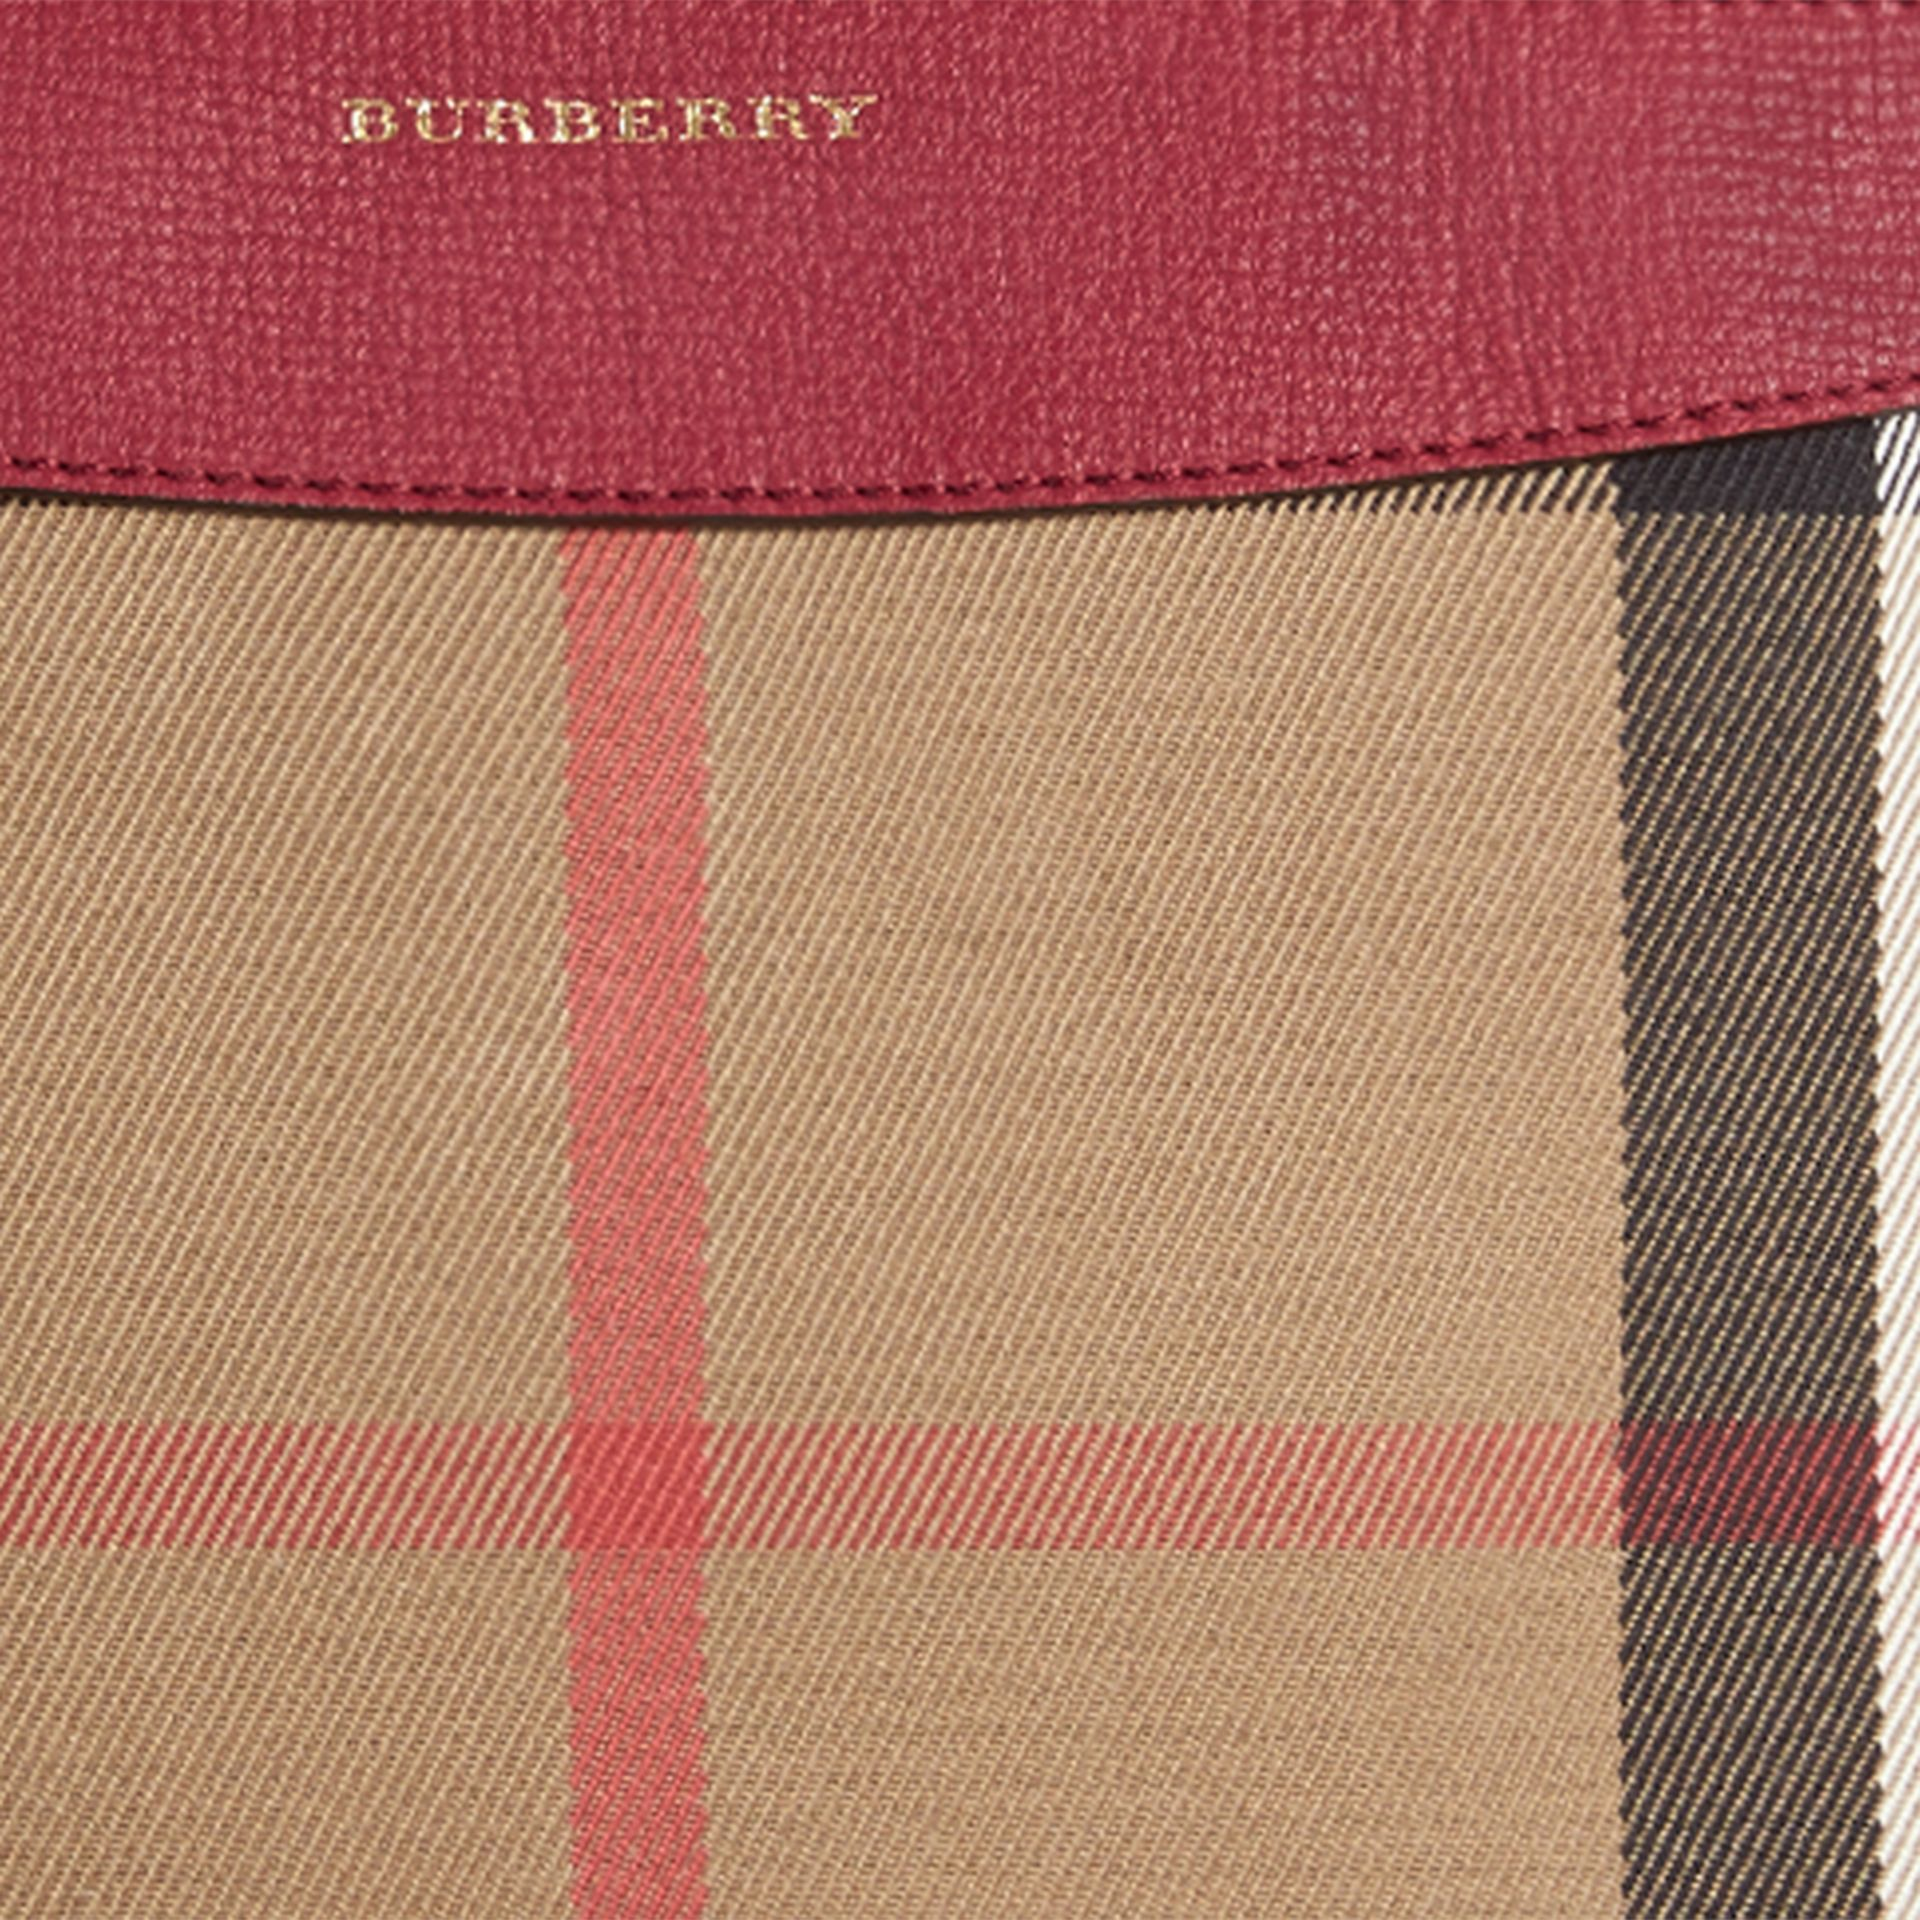 Clutch en coton House check et cuir (Rouge Militaire) - Femme | Burberry - photo de la galerie 5